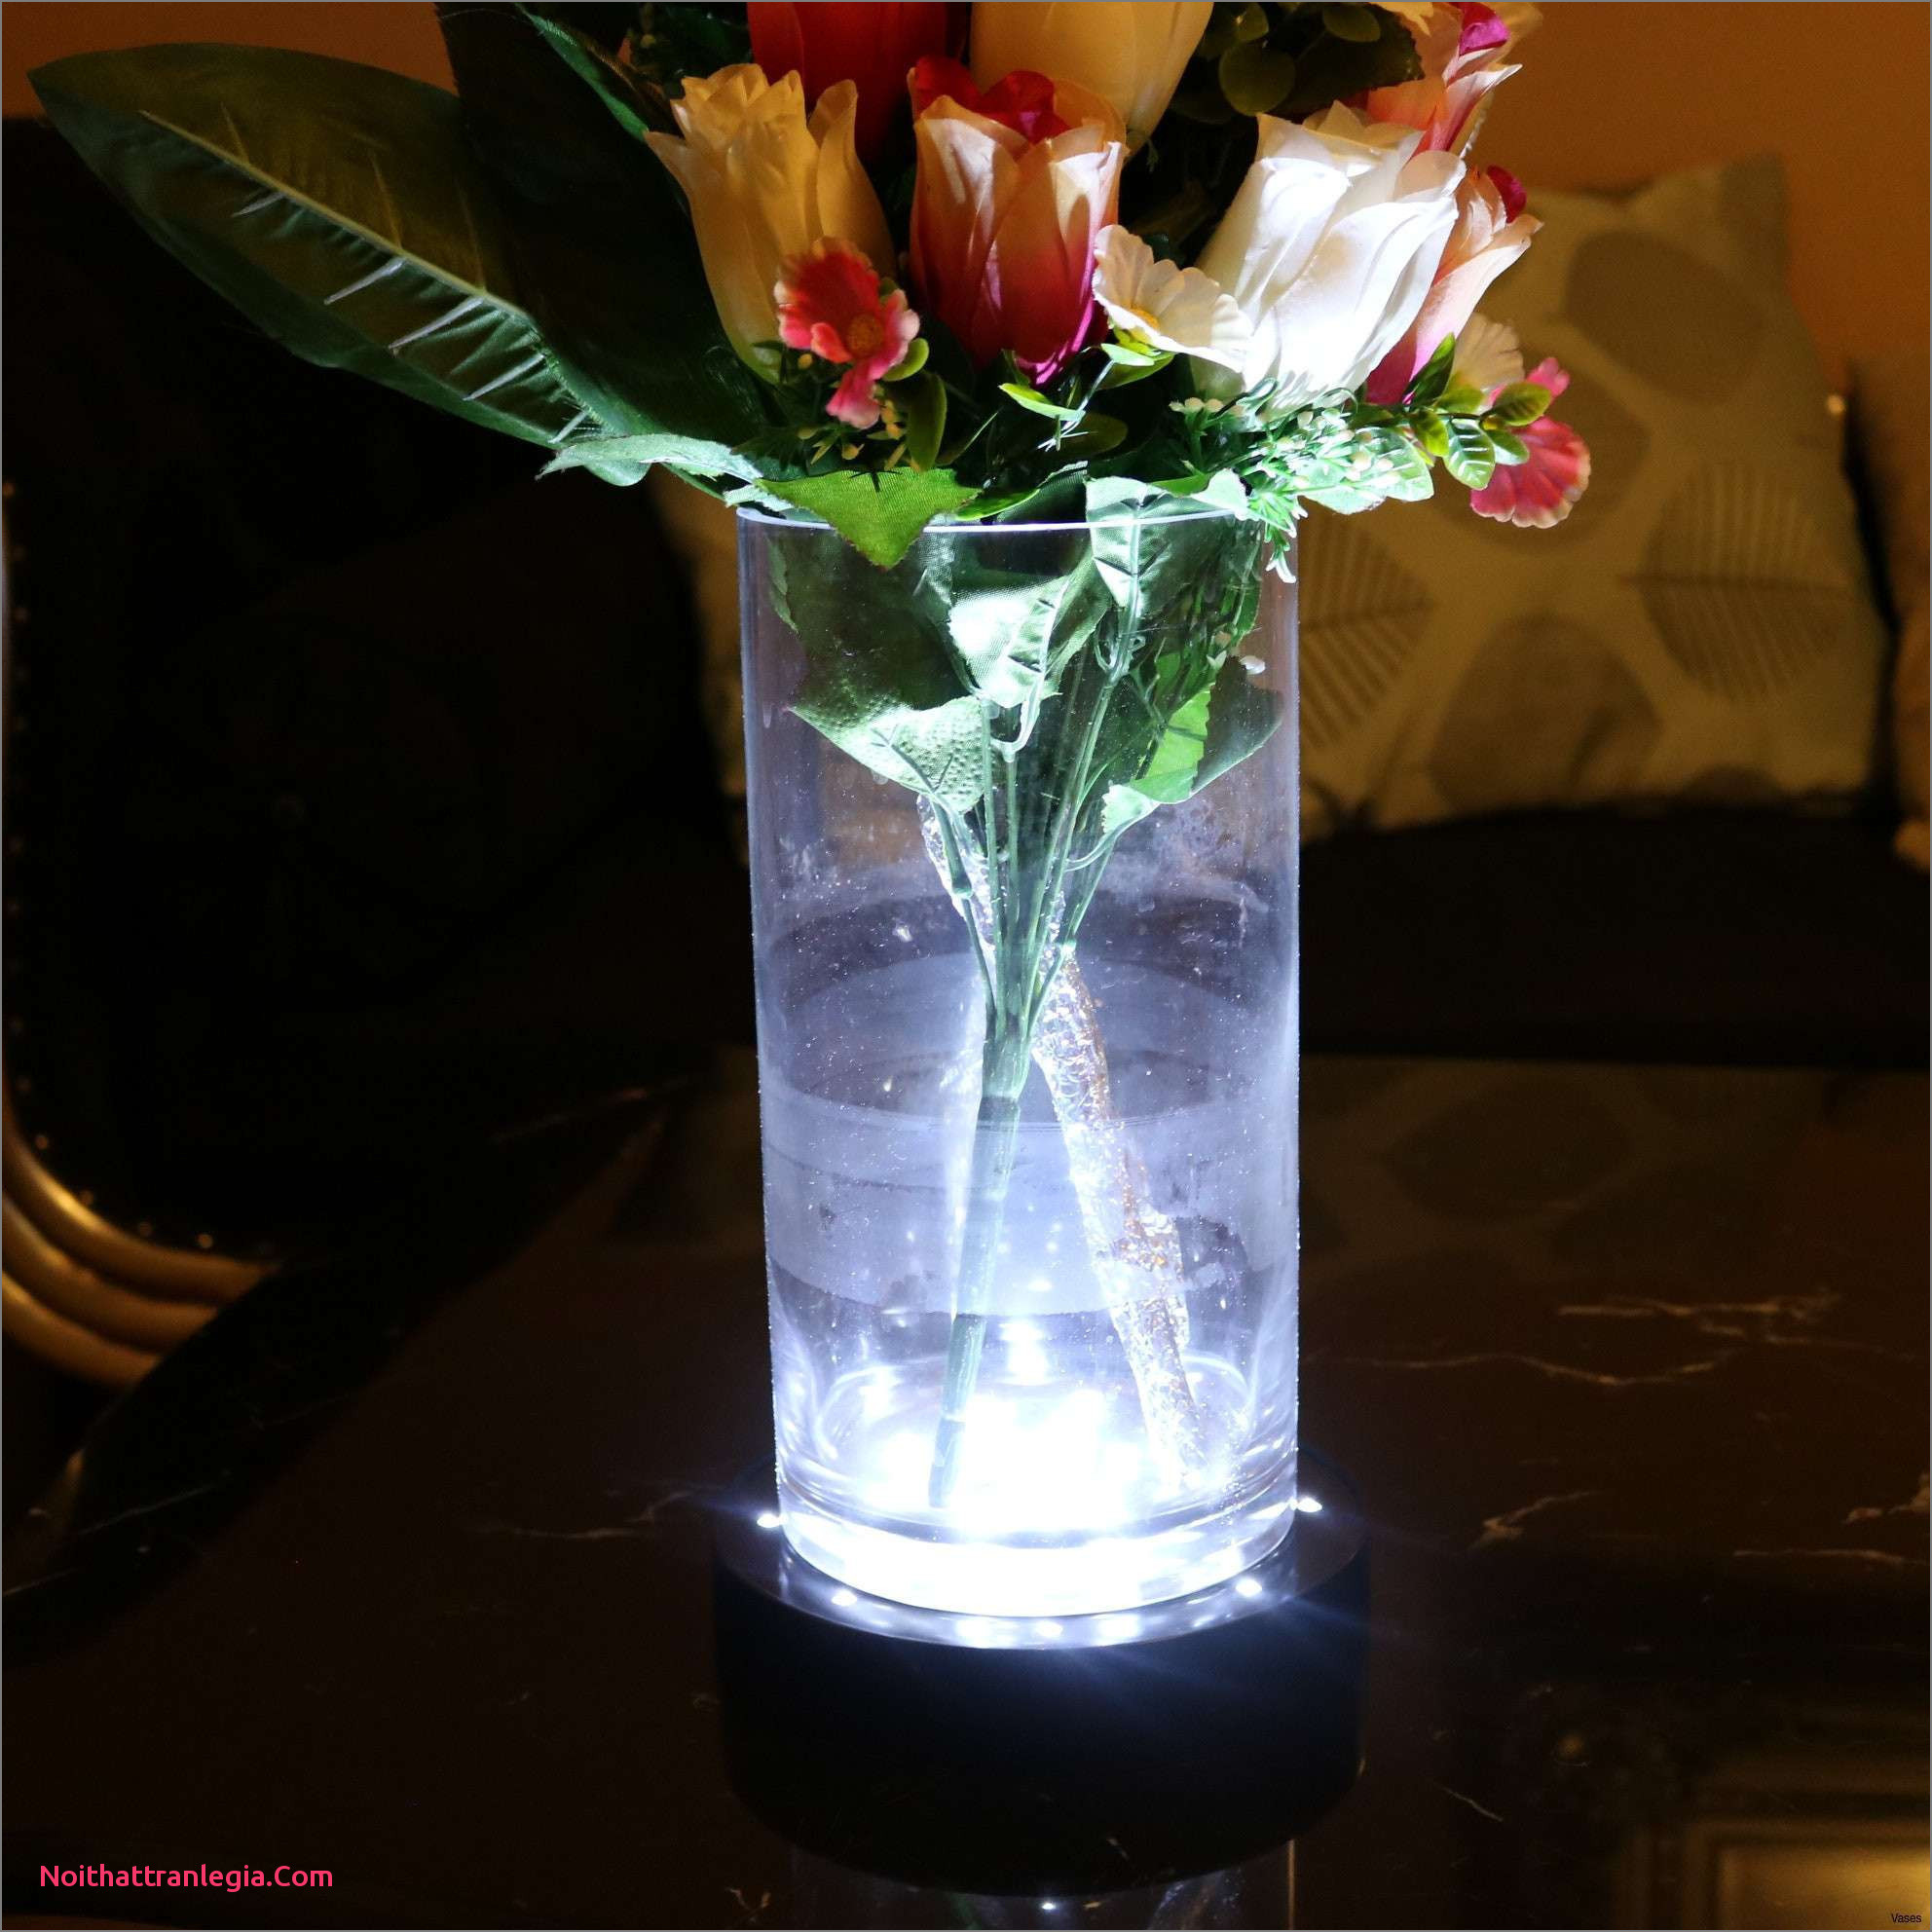 flower arrangements in small square vases of 20 cut glass antique vase noithattranlegia vases design regarding glass wall vases gallery vases disposable plastic single cheap flower rose vasei 0d design glass